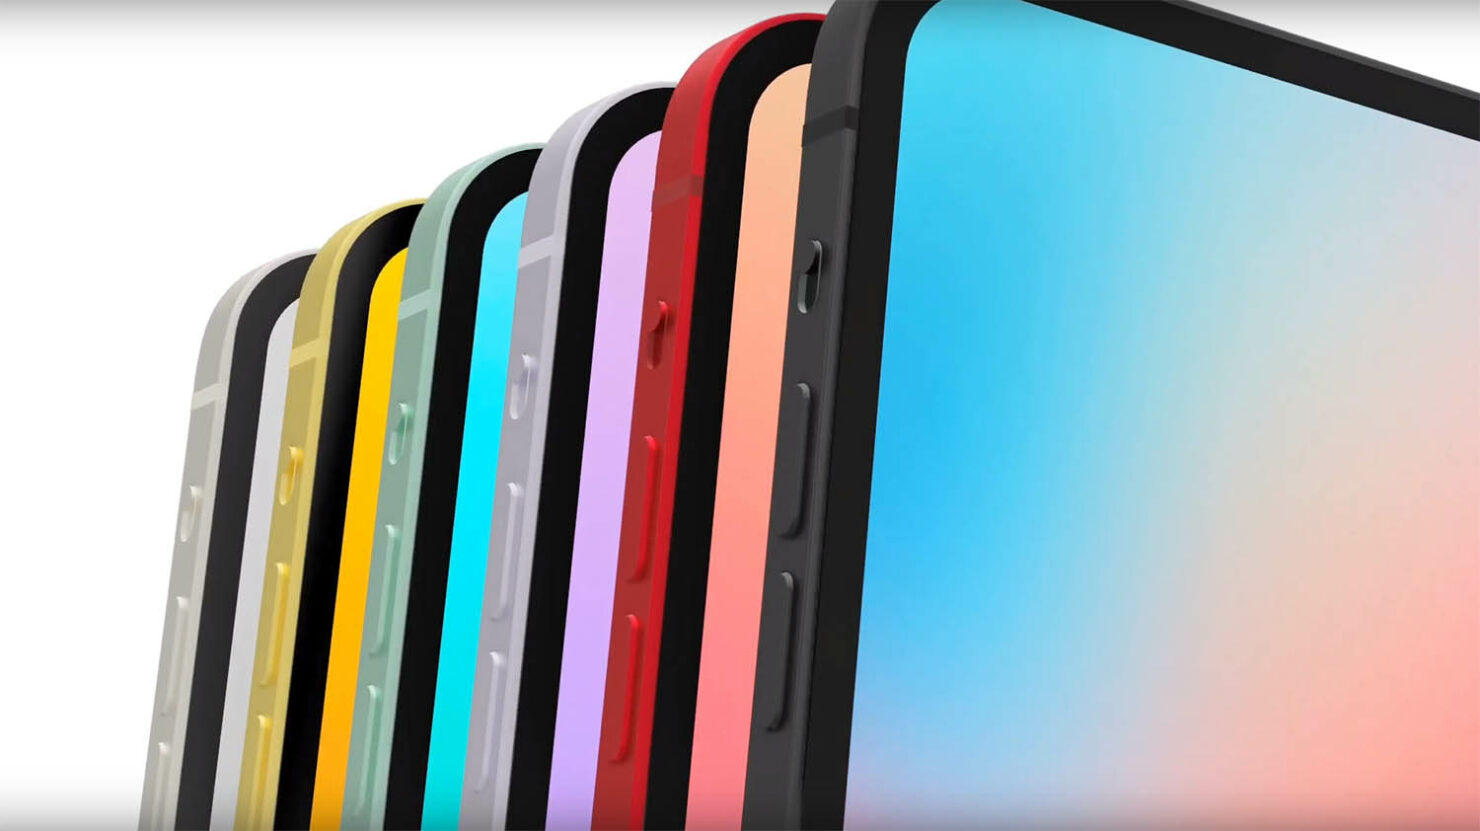 iPhone 12 Design With Precise Bezels, Dual Camera, More Shown in Latest Concept